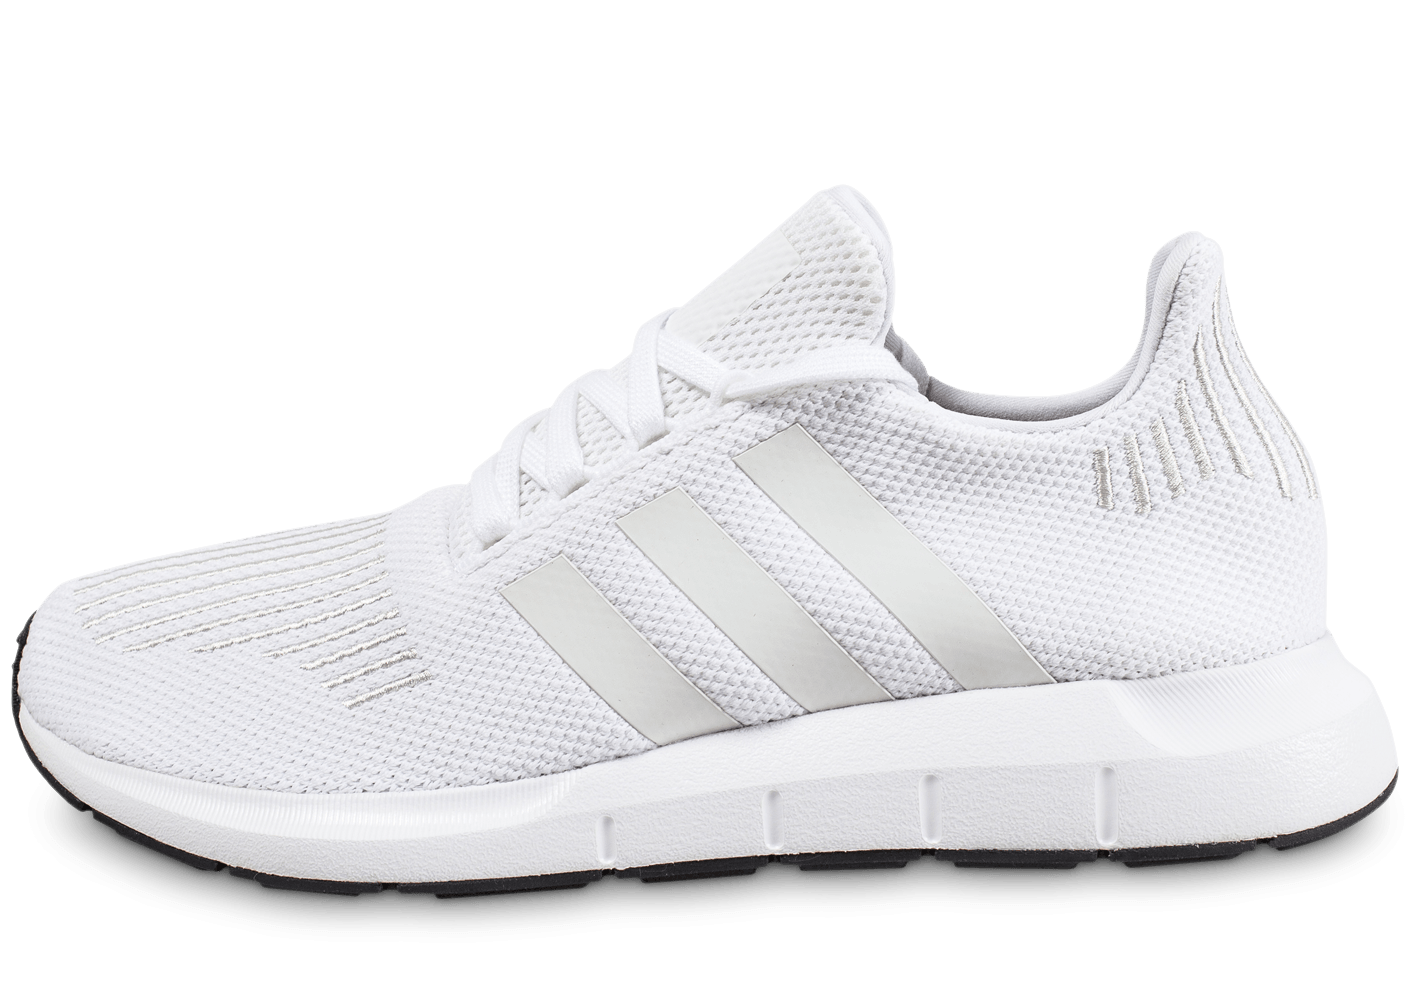 low priced 2c562 294a0 Chaussures Adidas Swift Run blanches homme uL2iTZcj